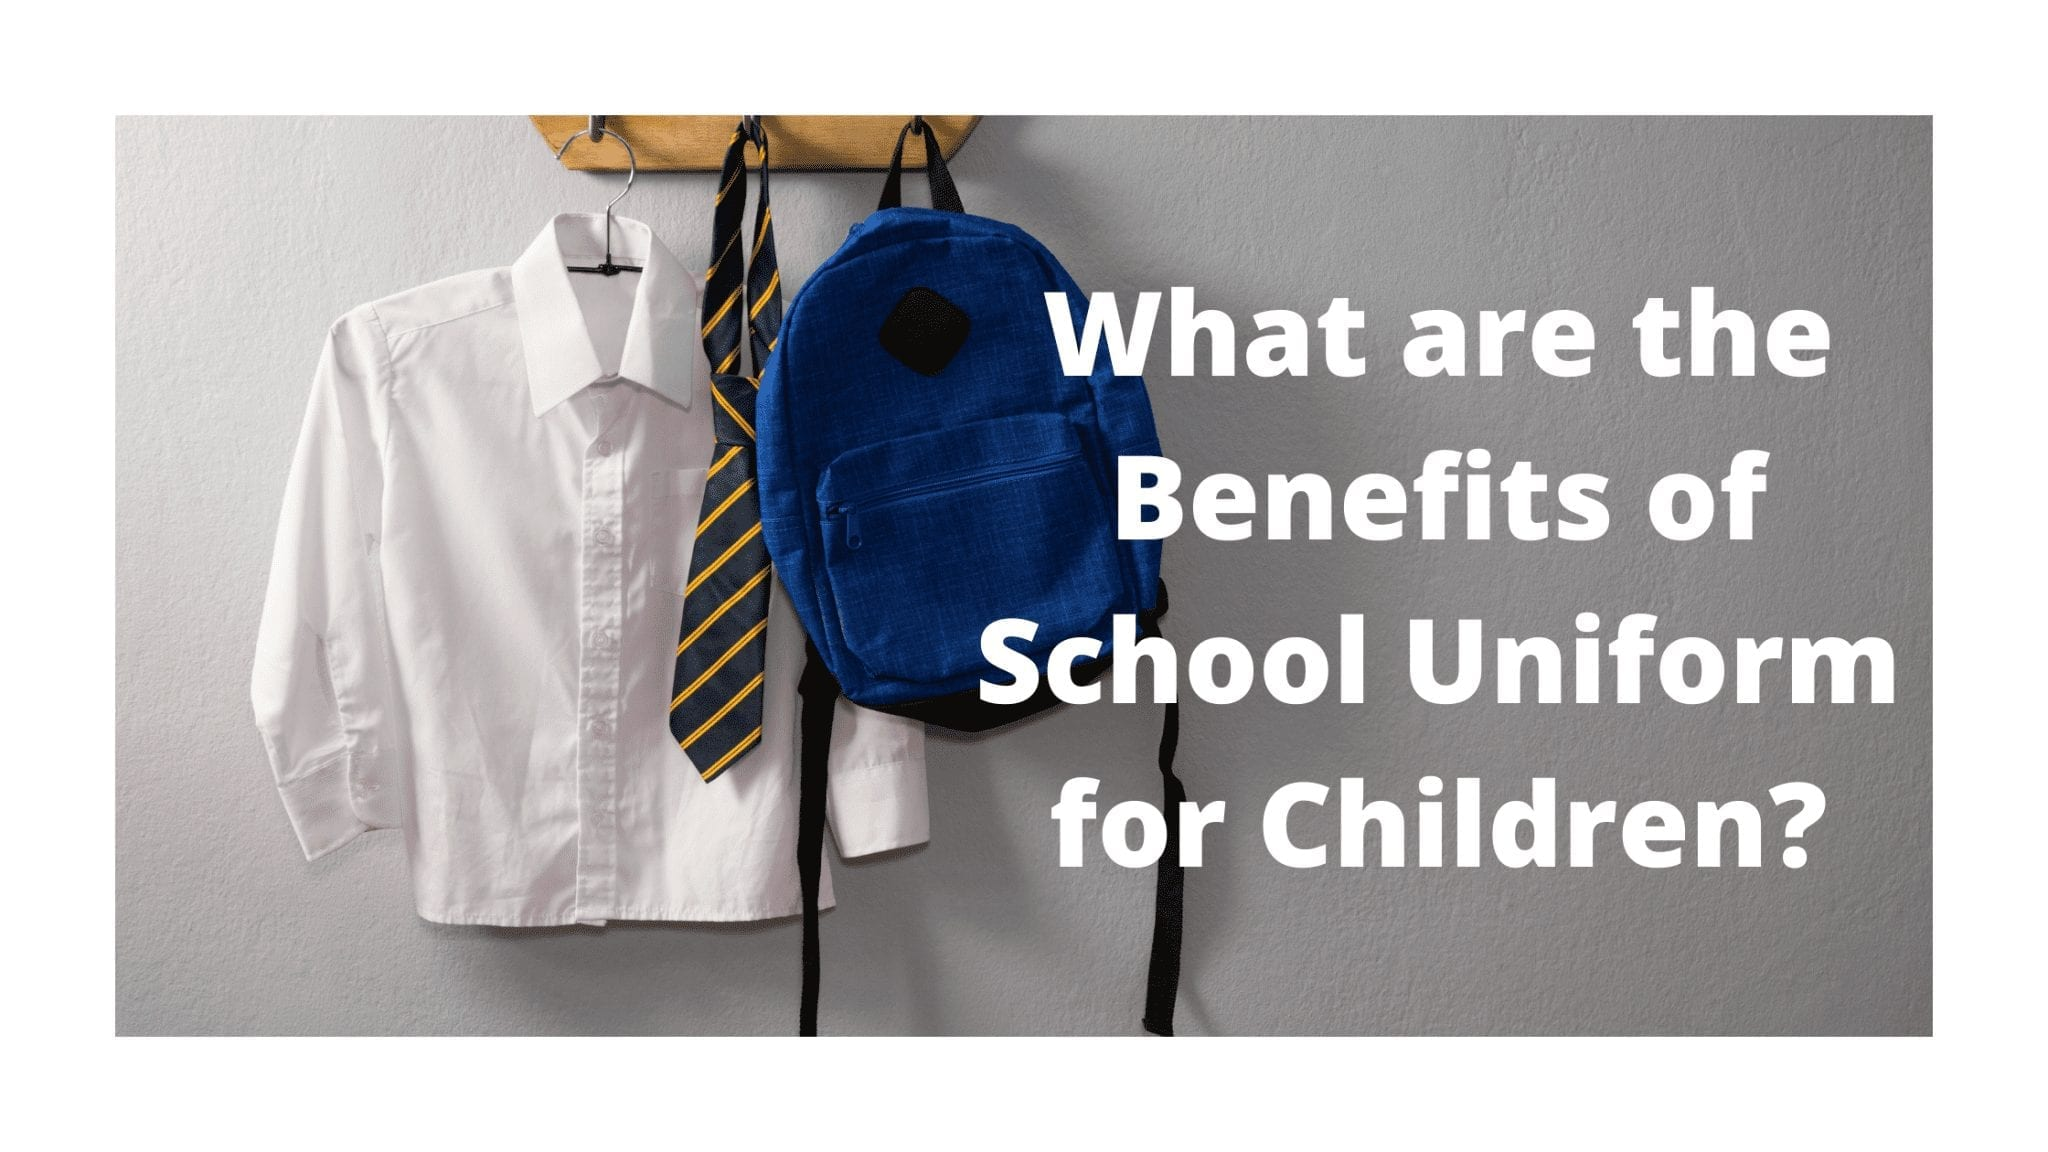 What are the Benefits of School Uniform for Children?